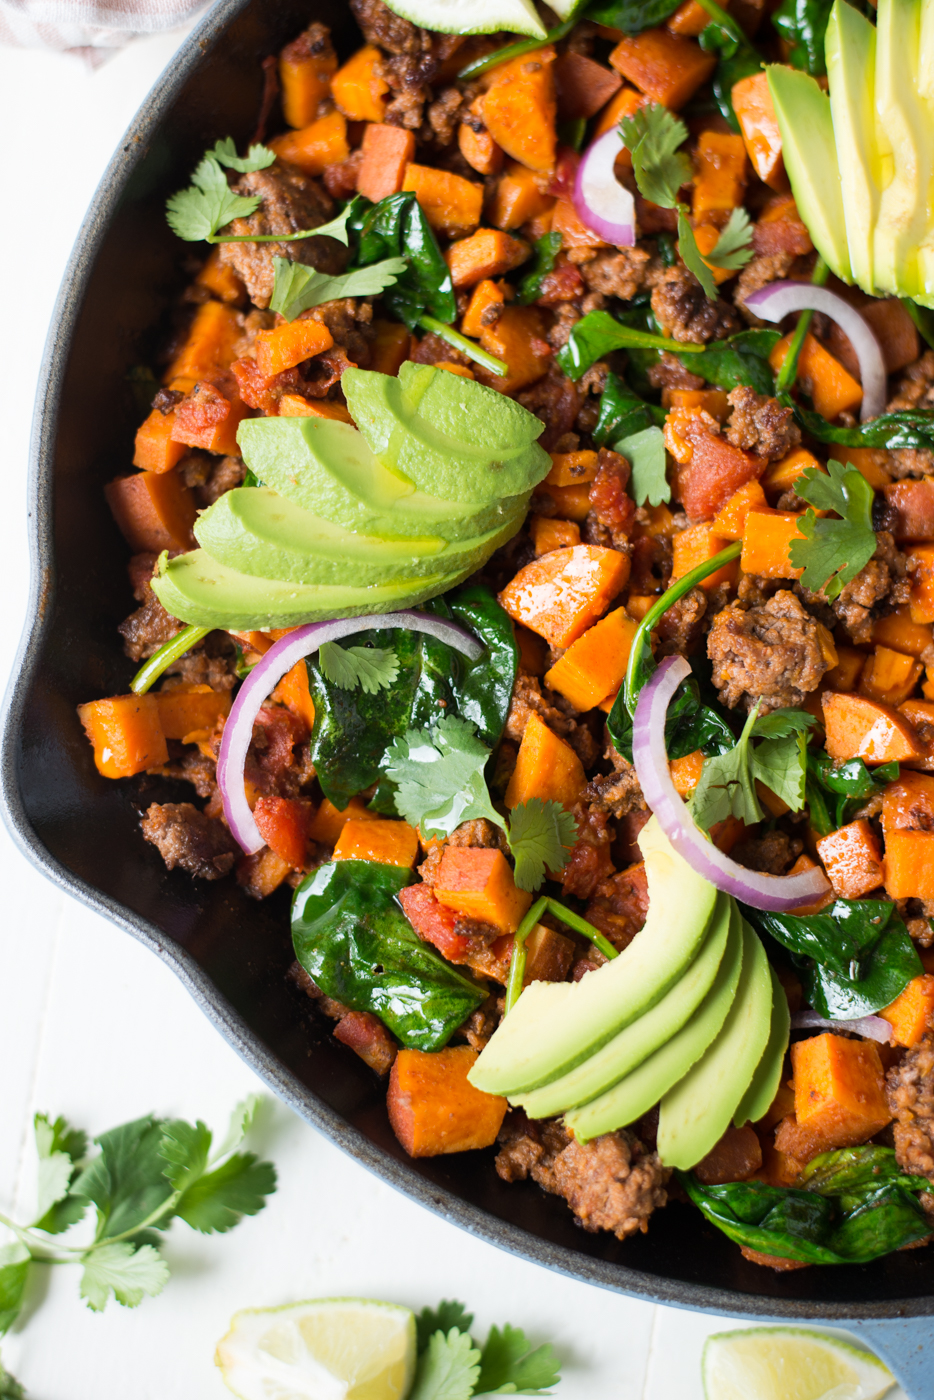 20-Minute Southwest Beef & Sweet Potato Skillet is a super simple and crazy flavorful weeknight meal that everyone will love. A gluten-free, dairy-free, whole30, one-pan recipe. #groundbeef #sweetpotato #weeknightrecipe #weeknightdinner #onepan #onepot #onepanrecipe #whole30recipe #januarywhole30 #winterrecipe #healthyrecipe #paleo #whole30 #dinner #glutenfree #dairyfree #realfoodrecipe #realfoodwholelife #recipe